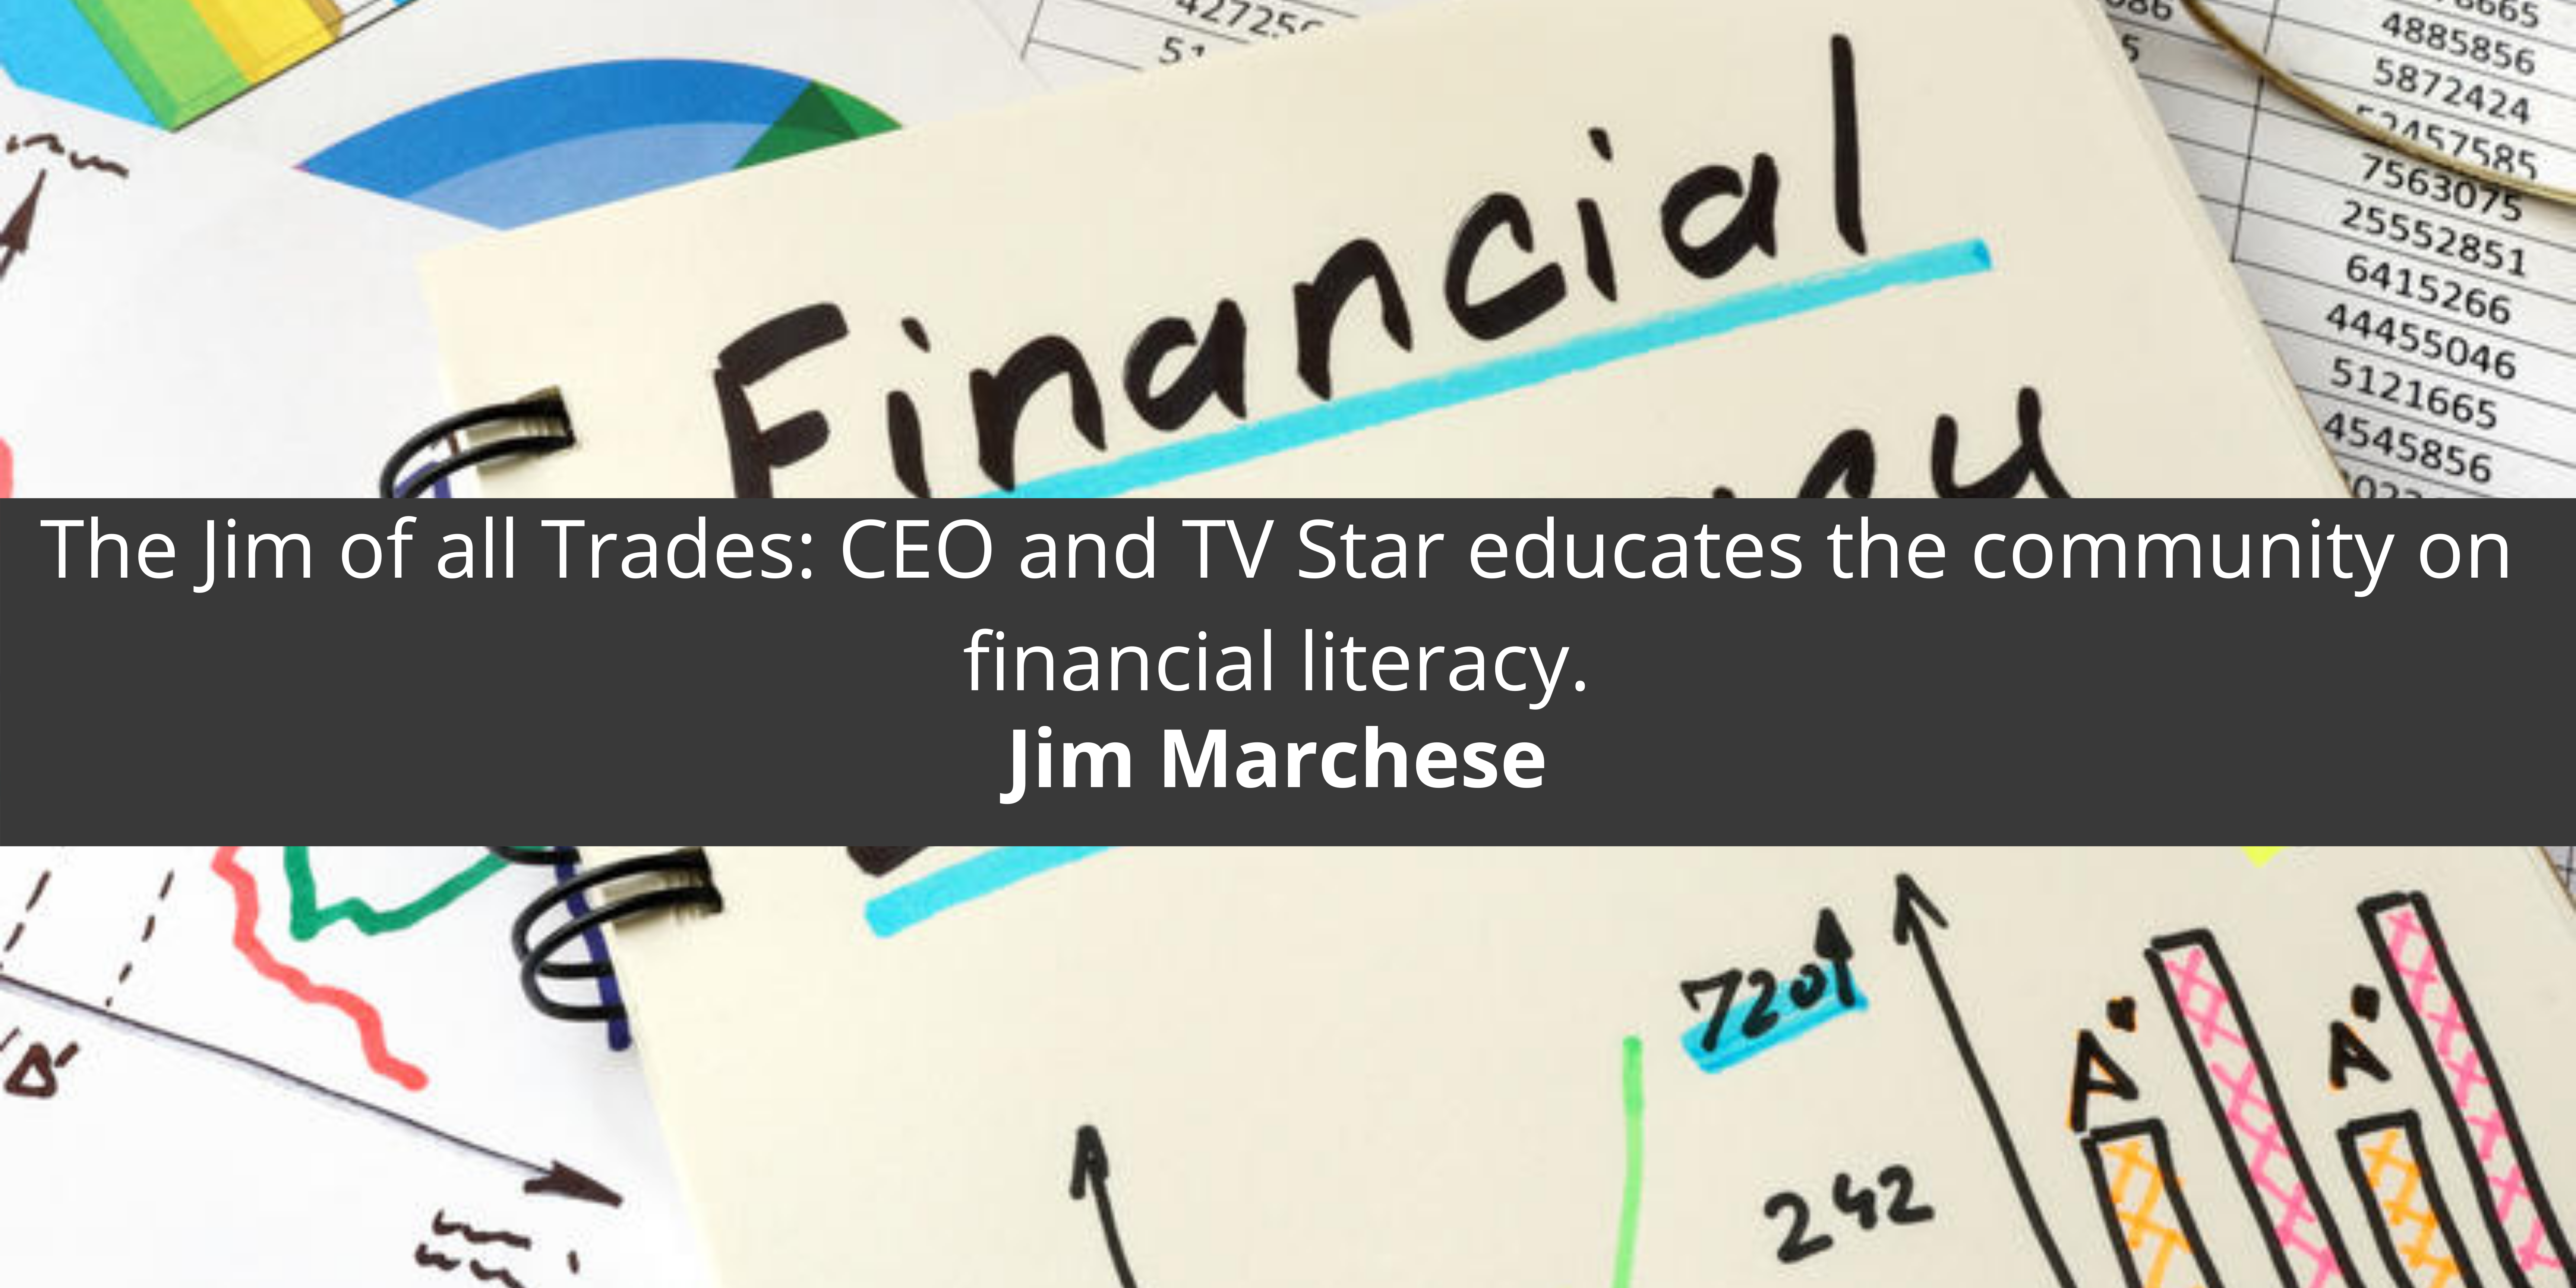 Jim Marchese all Trades: CEO and TV Star community on financial literacy.